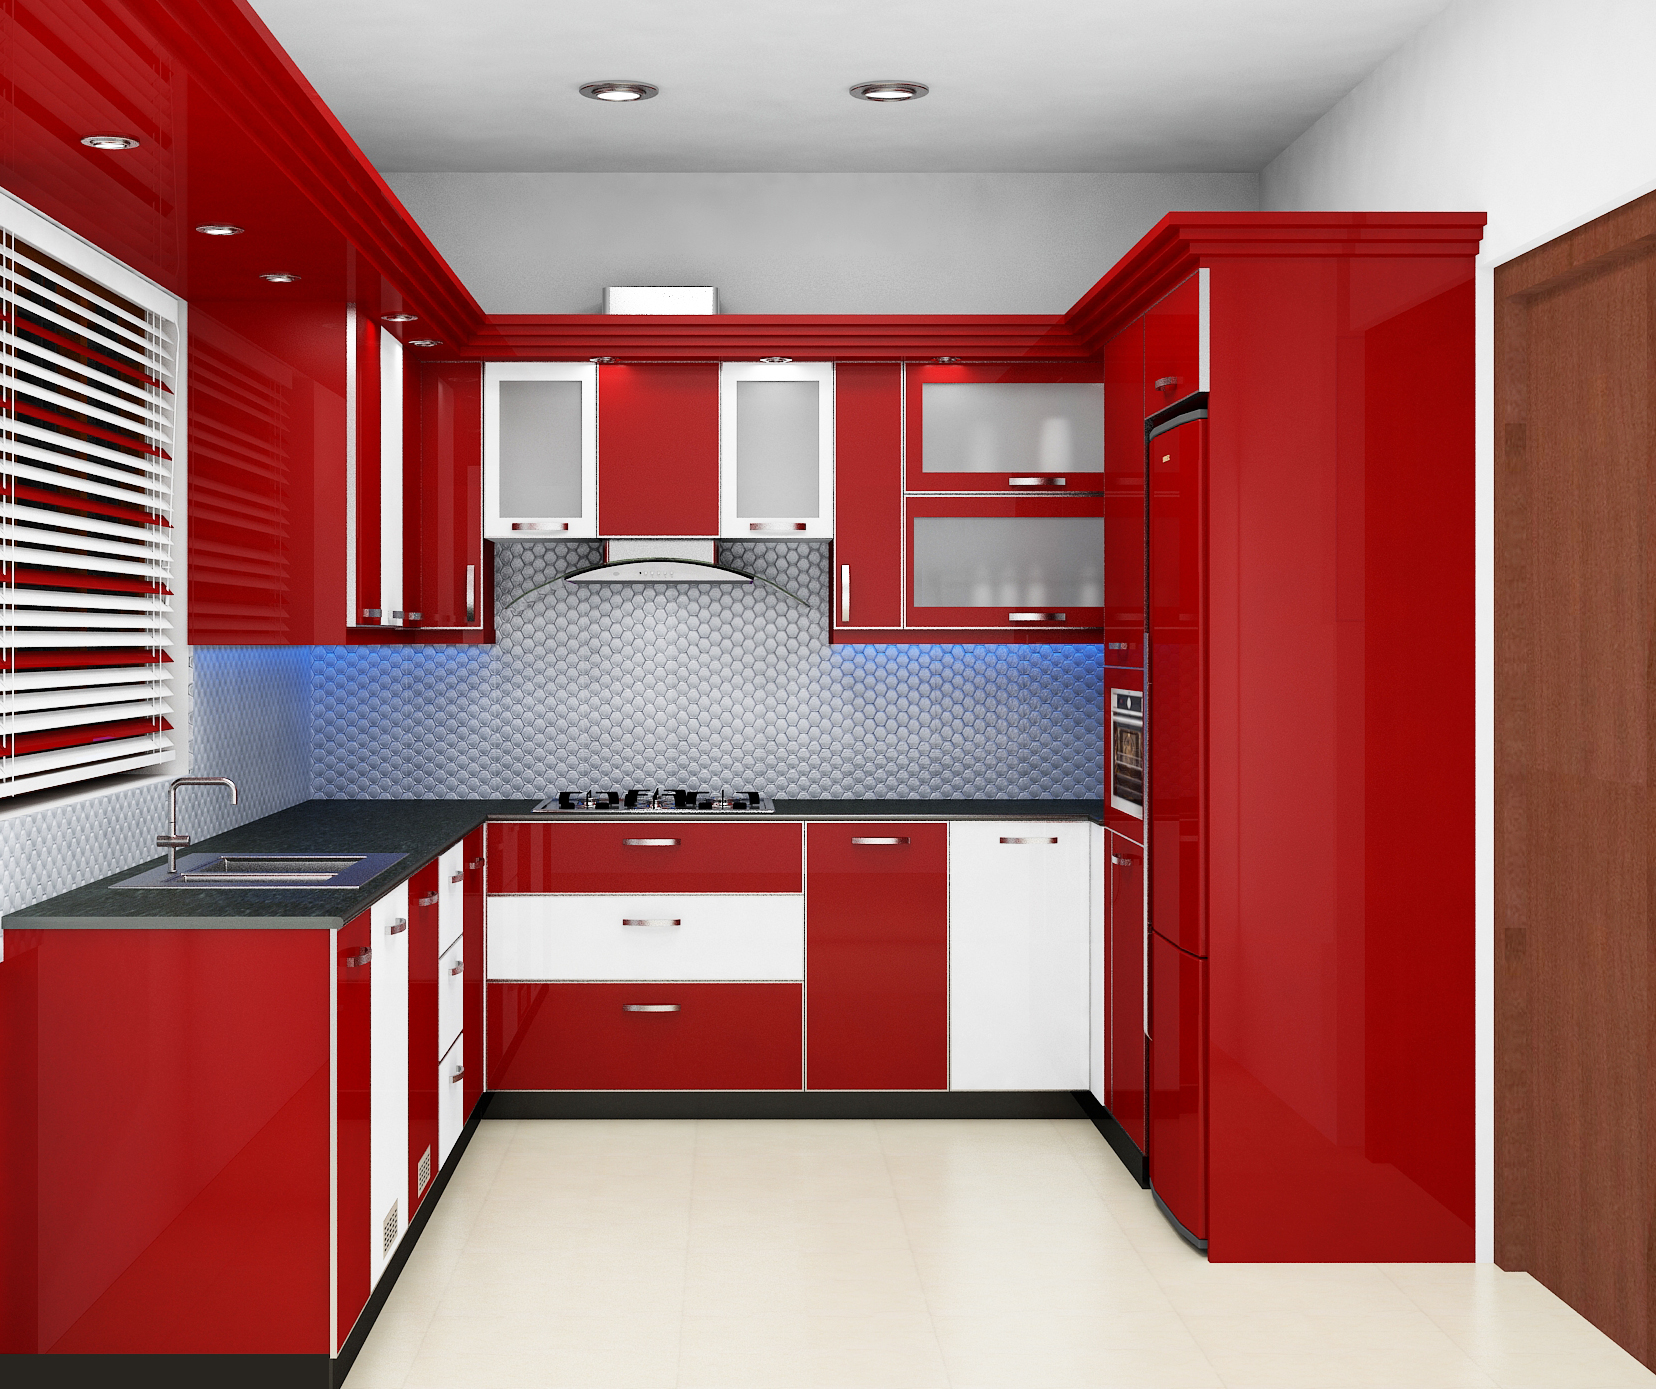 Exemplary and amazing modular kitchen home interior design for Home interior ideas